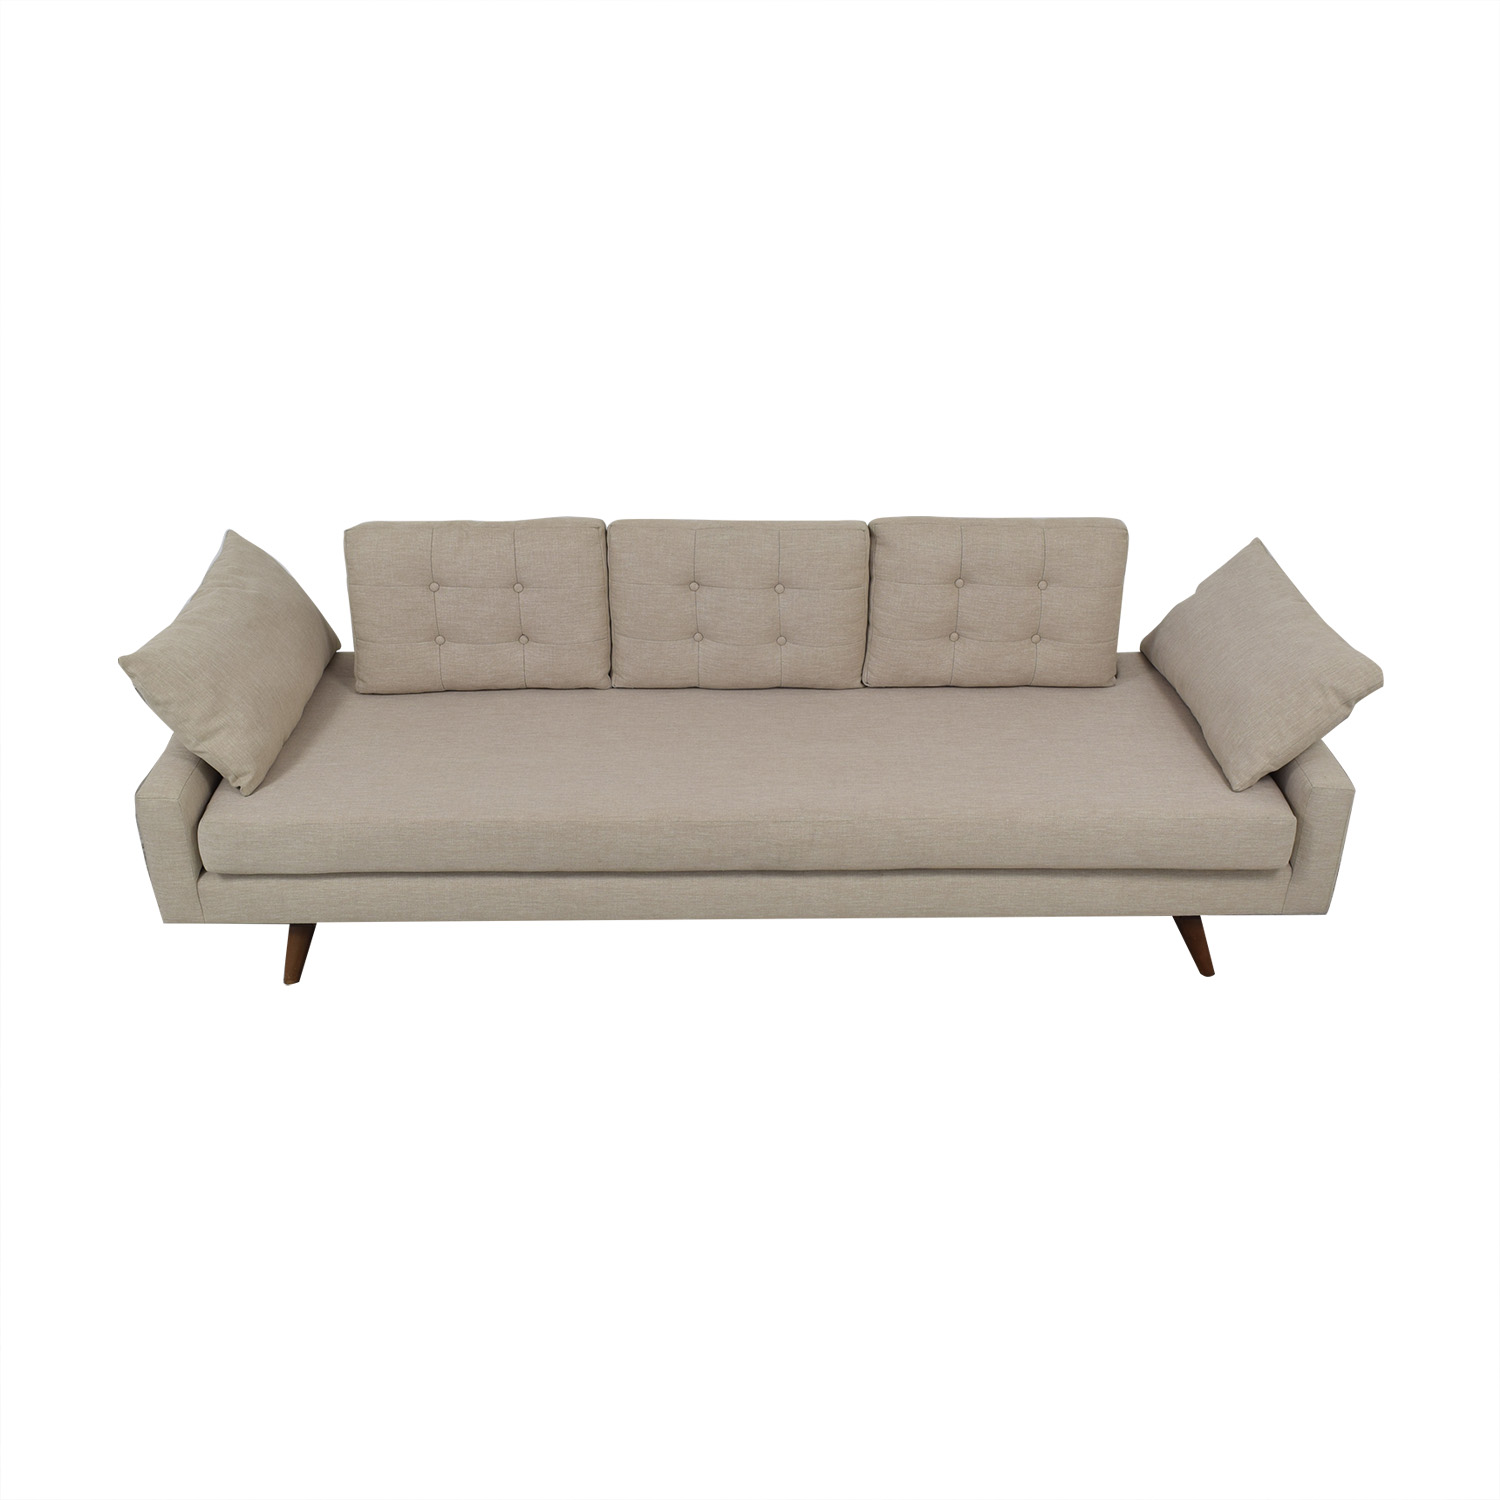 Thrive Thrive Furniture Mid-Century Sofa price